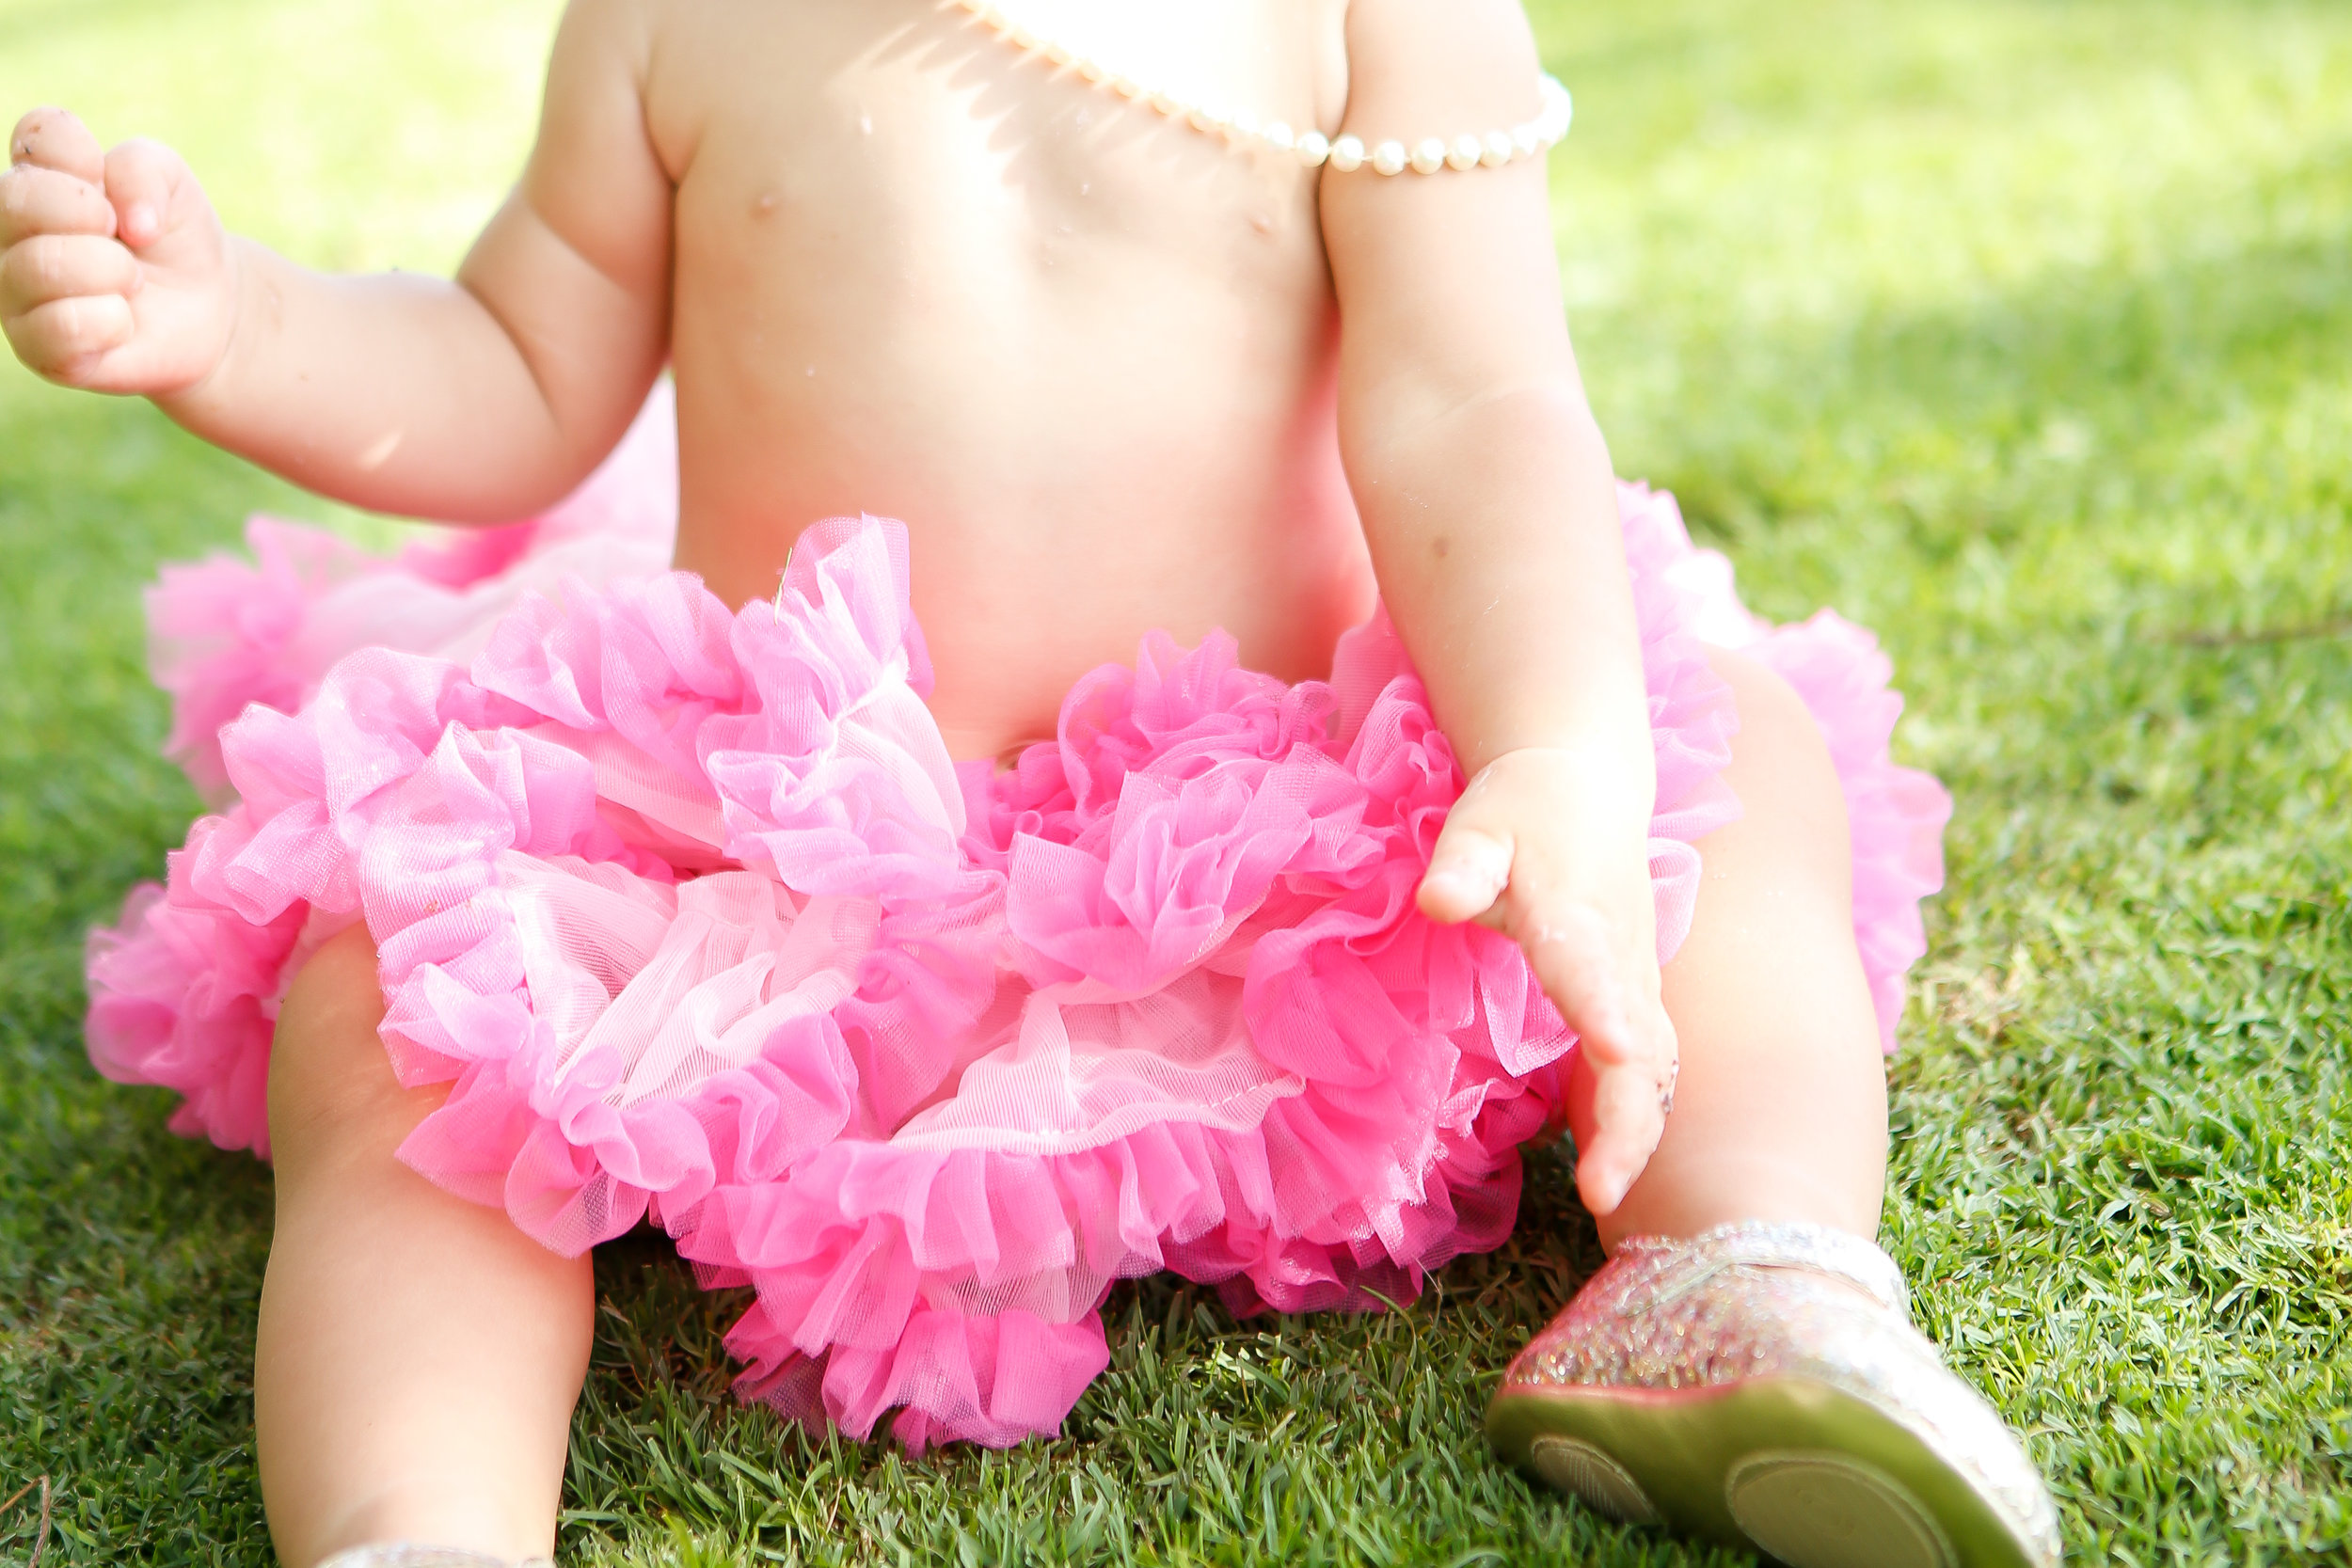 Fun frilly outfits are always fun for photo shoots, nice bright colors